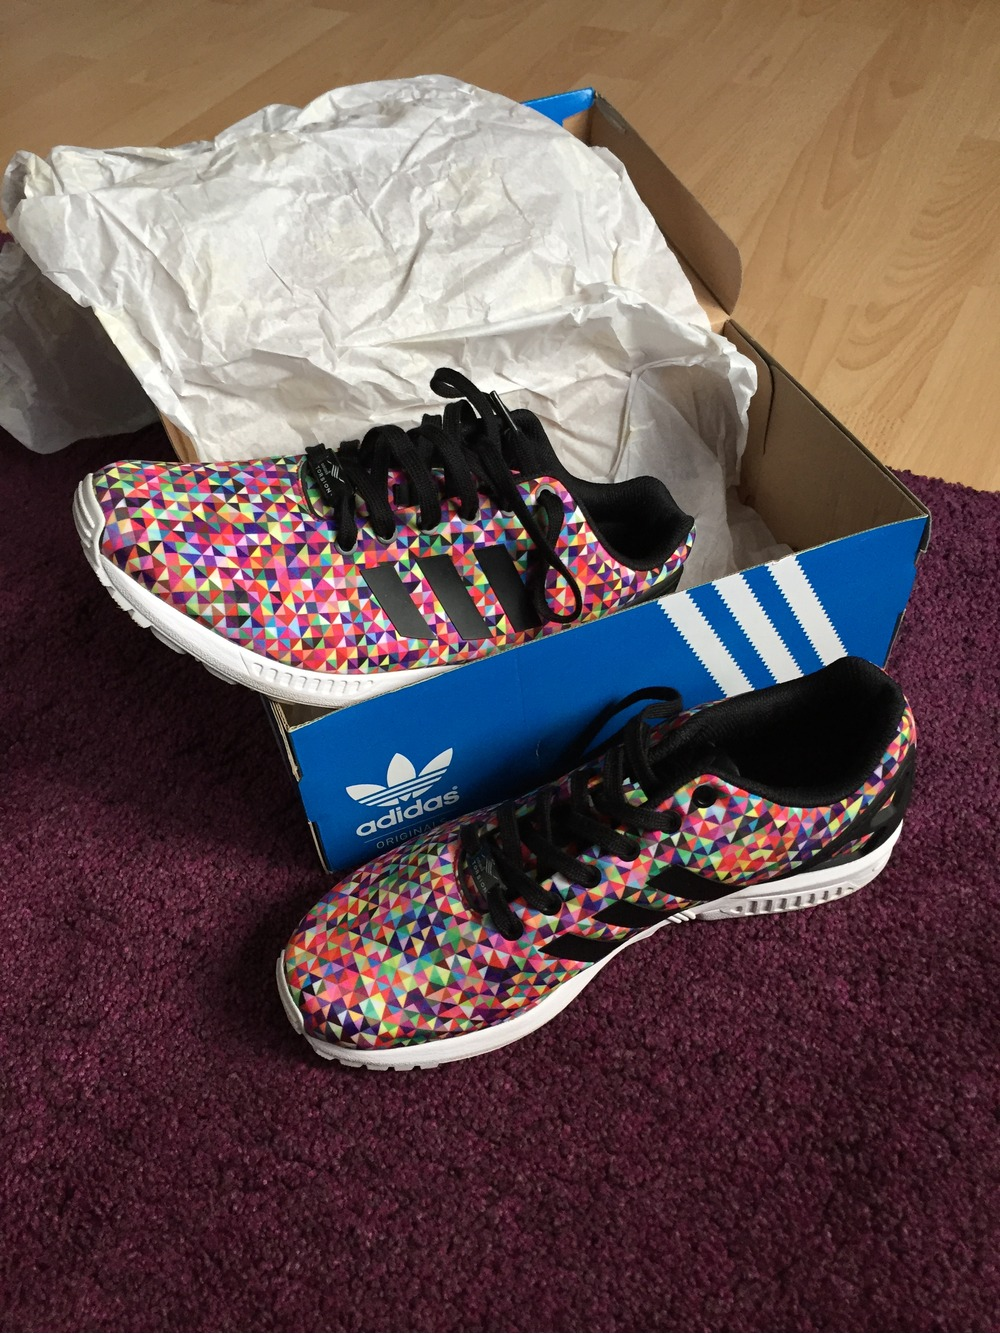 bc30984a148a0 Buy Adidas Cheap Adidas ZX Flux Boost Shoes Sale 2017